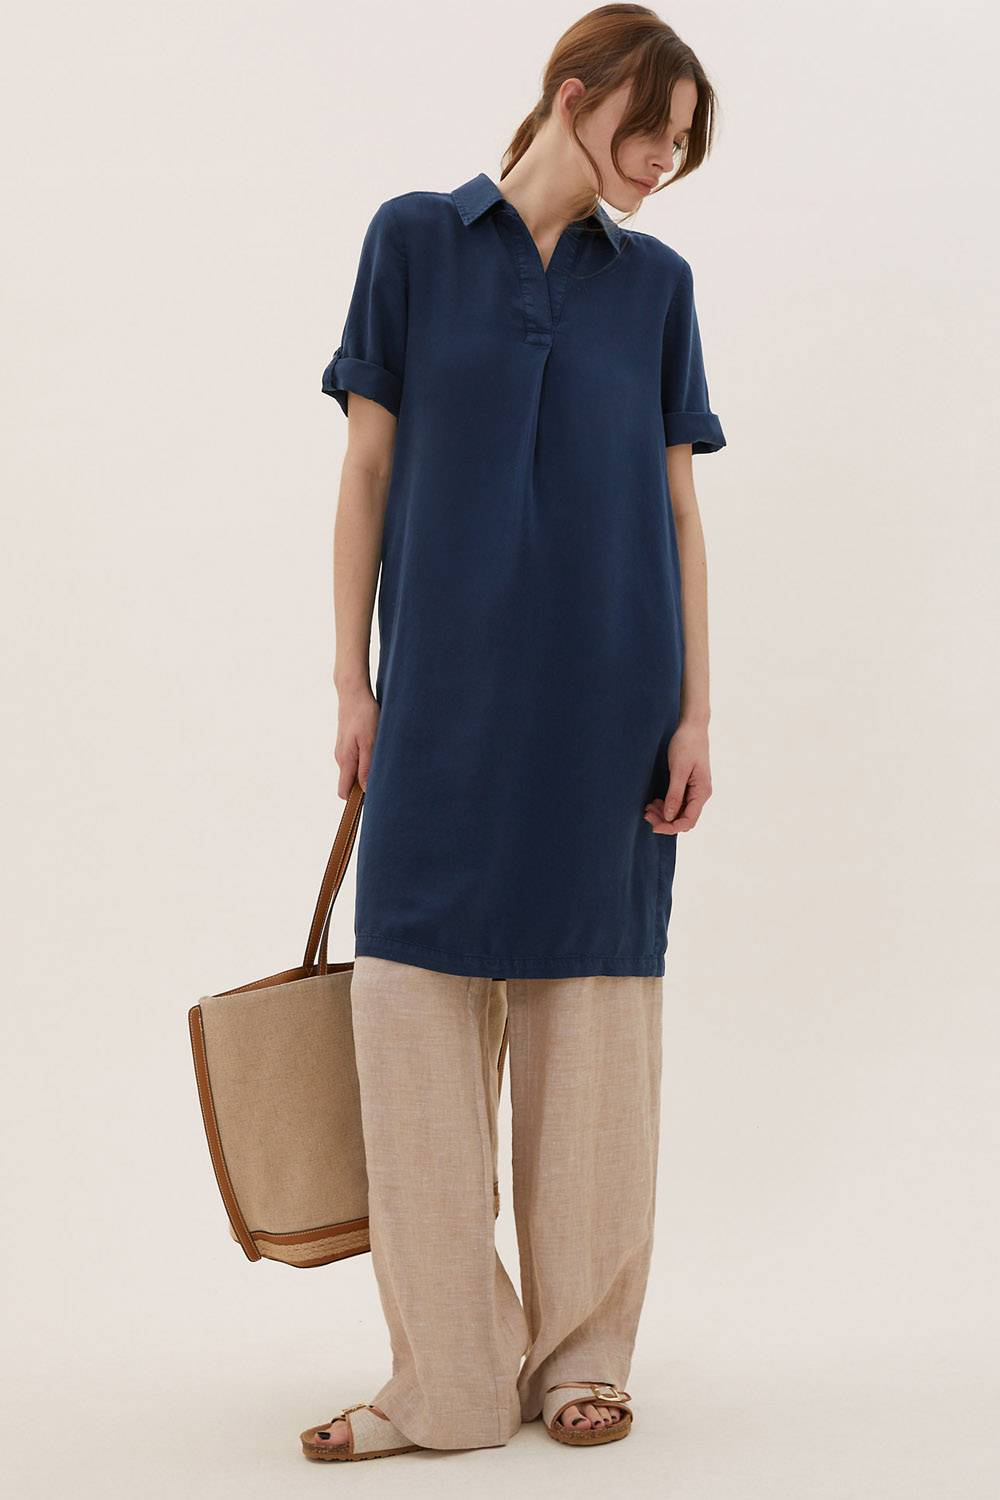 marks and spencer tencel clothing